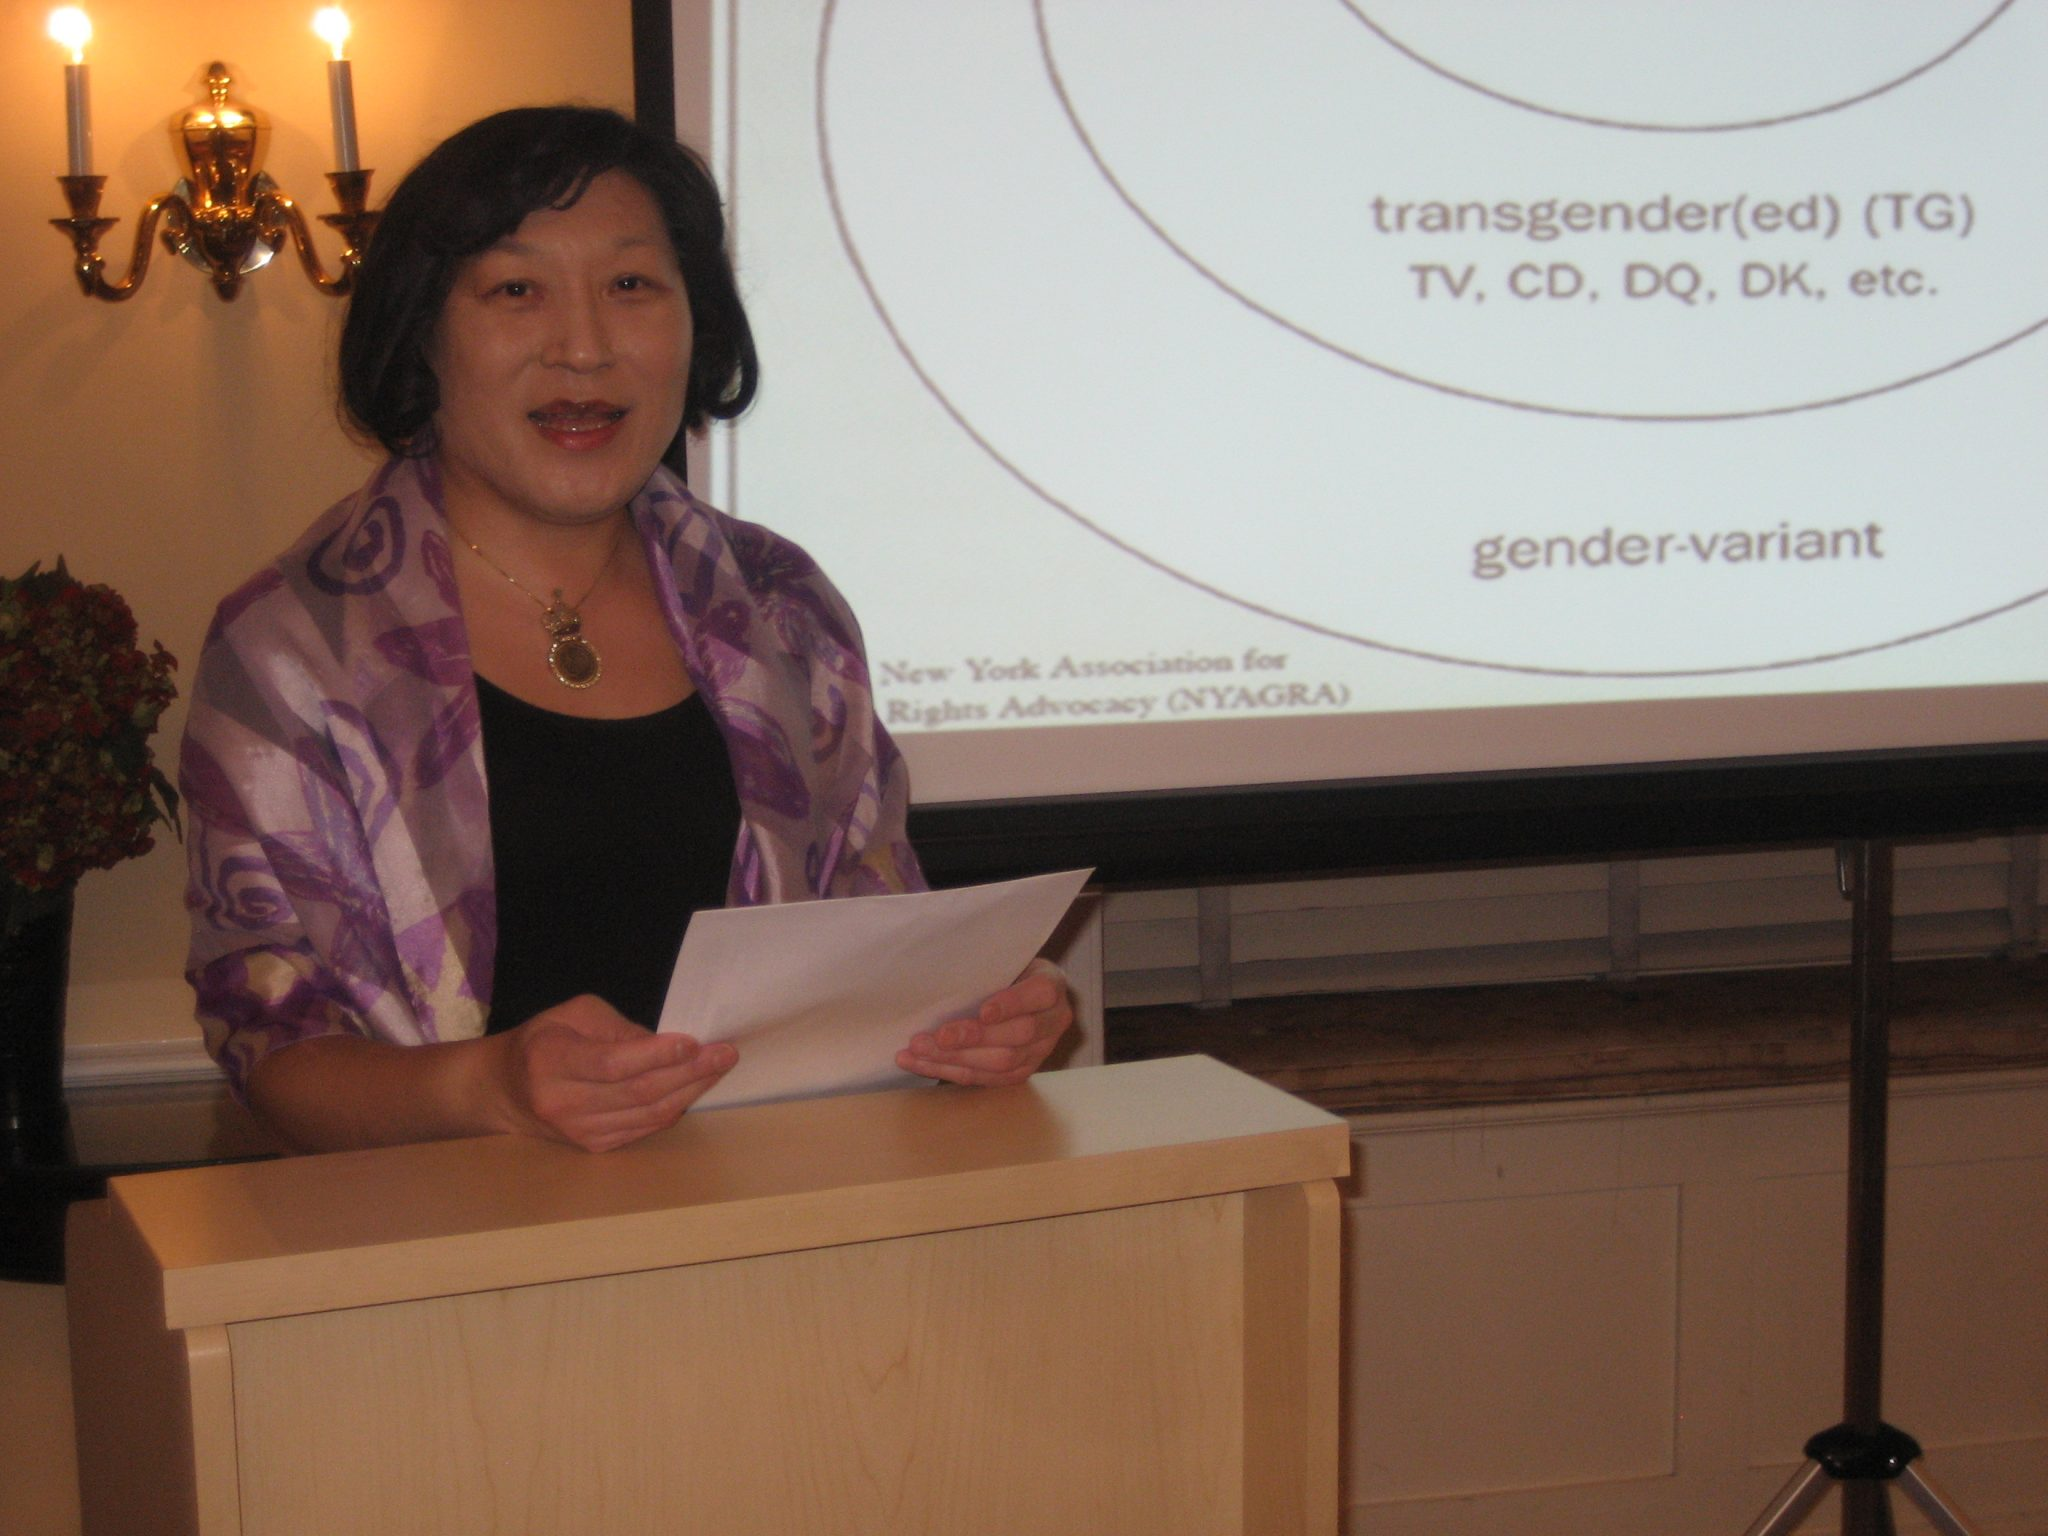 transgender identity community empowerment marymount manhattan transgender identity community empowerment pauline park ph d chair new york association for gender rights advocacy nyagra